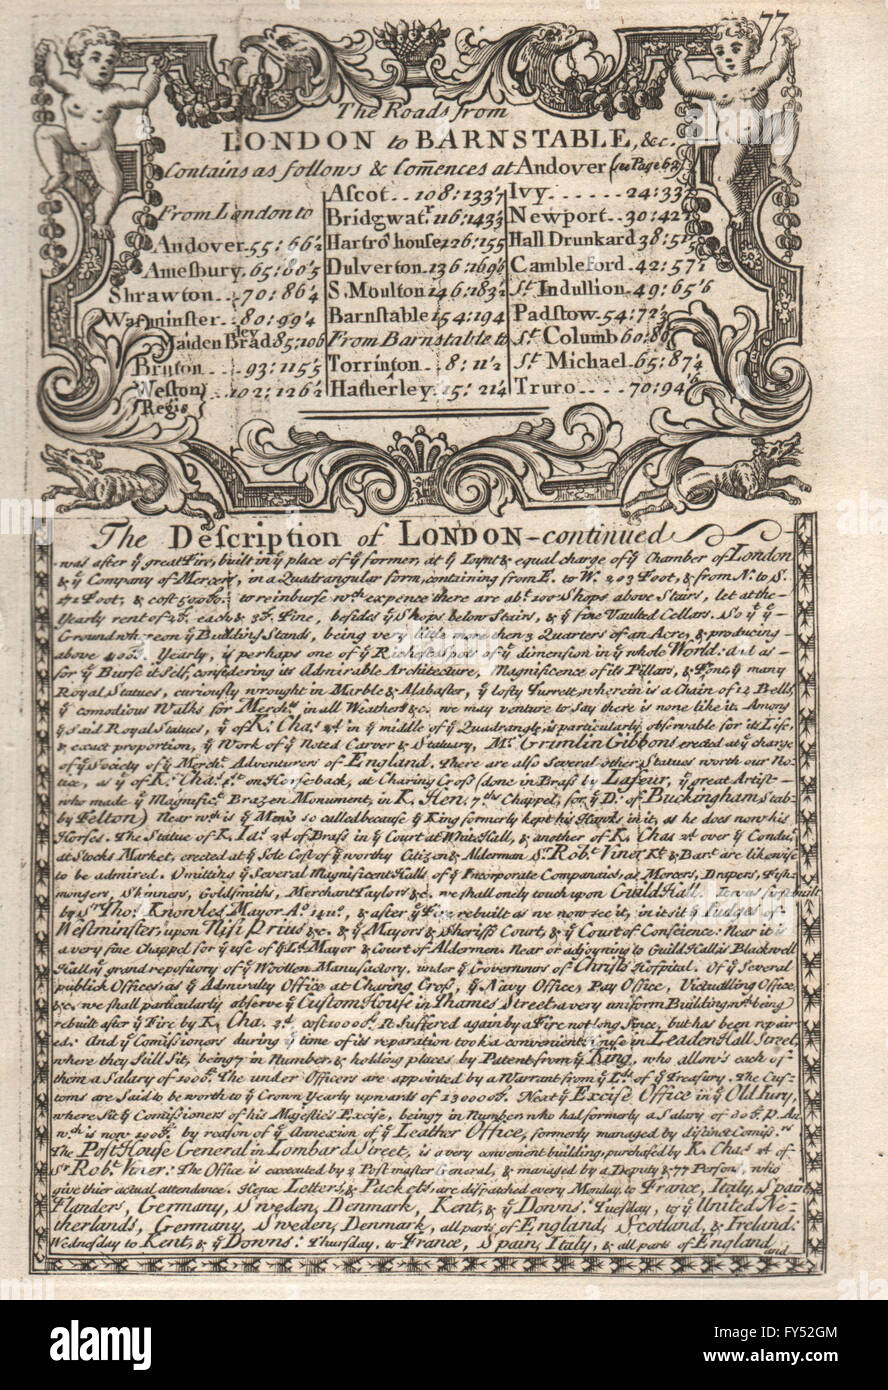 The Road from London to Barnstable. The Description of London - continued, 1753 - Stock Image